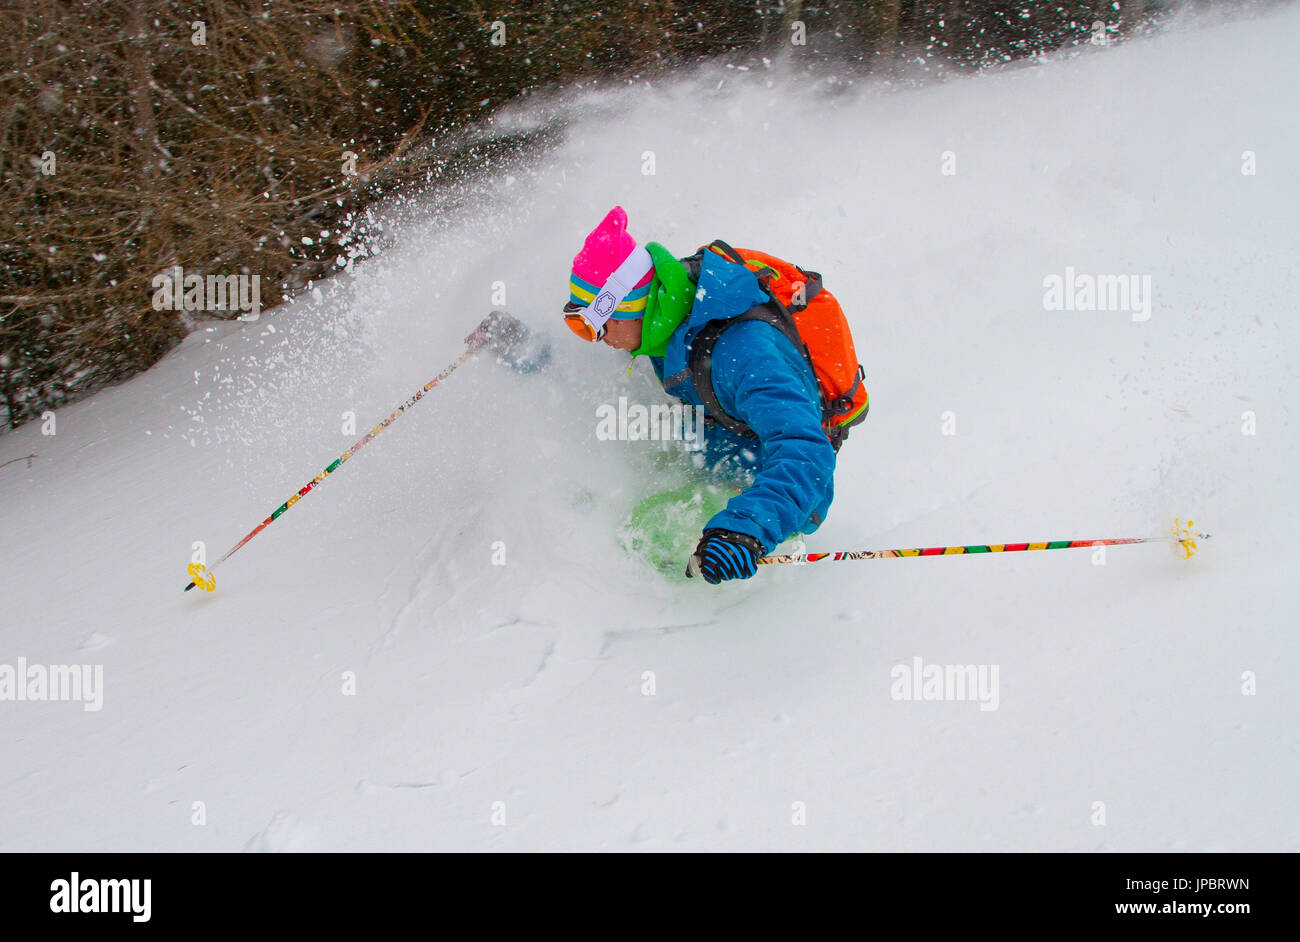 Freeride during winter in powder - Stock Image